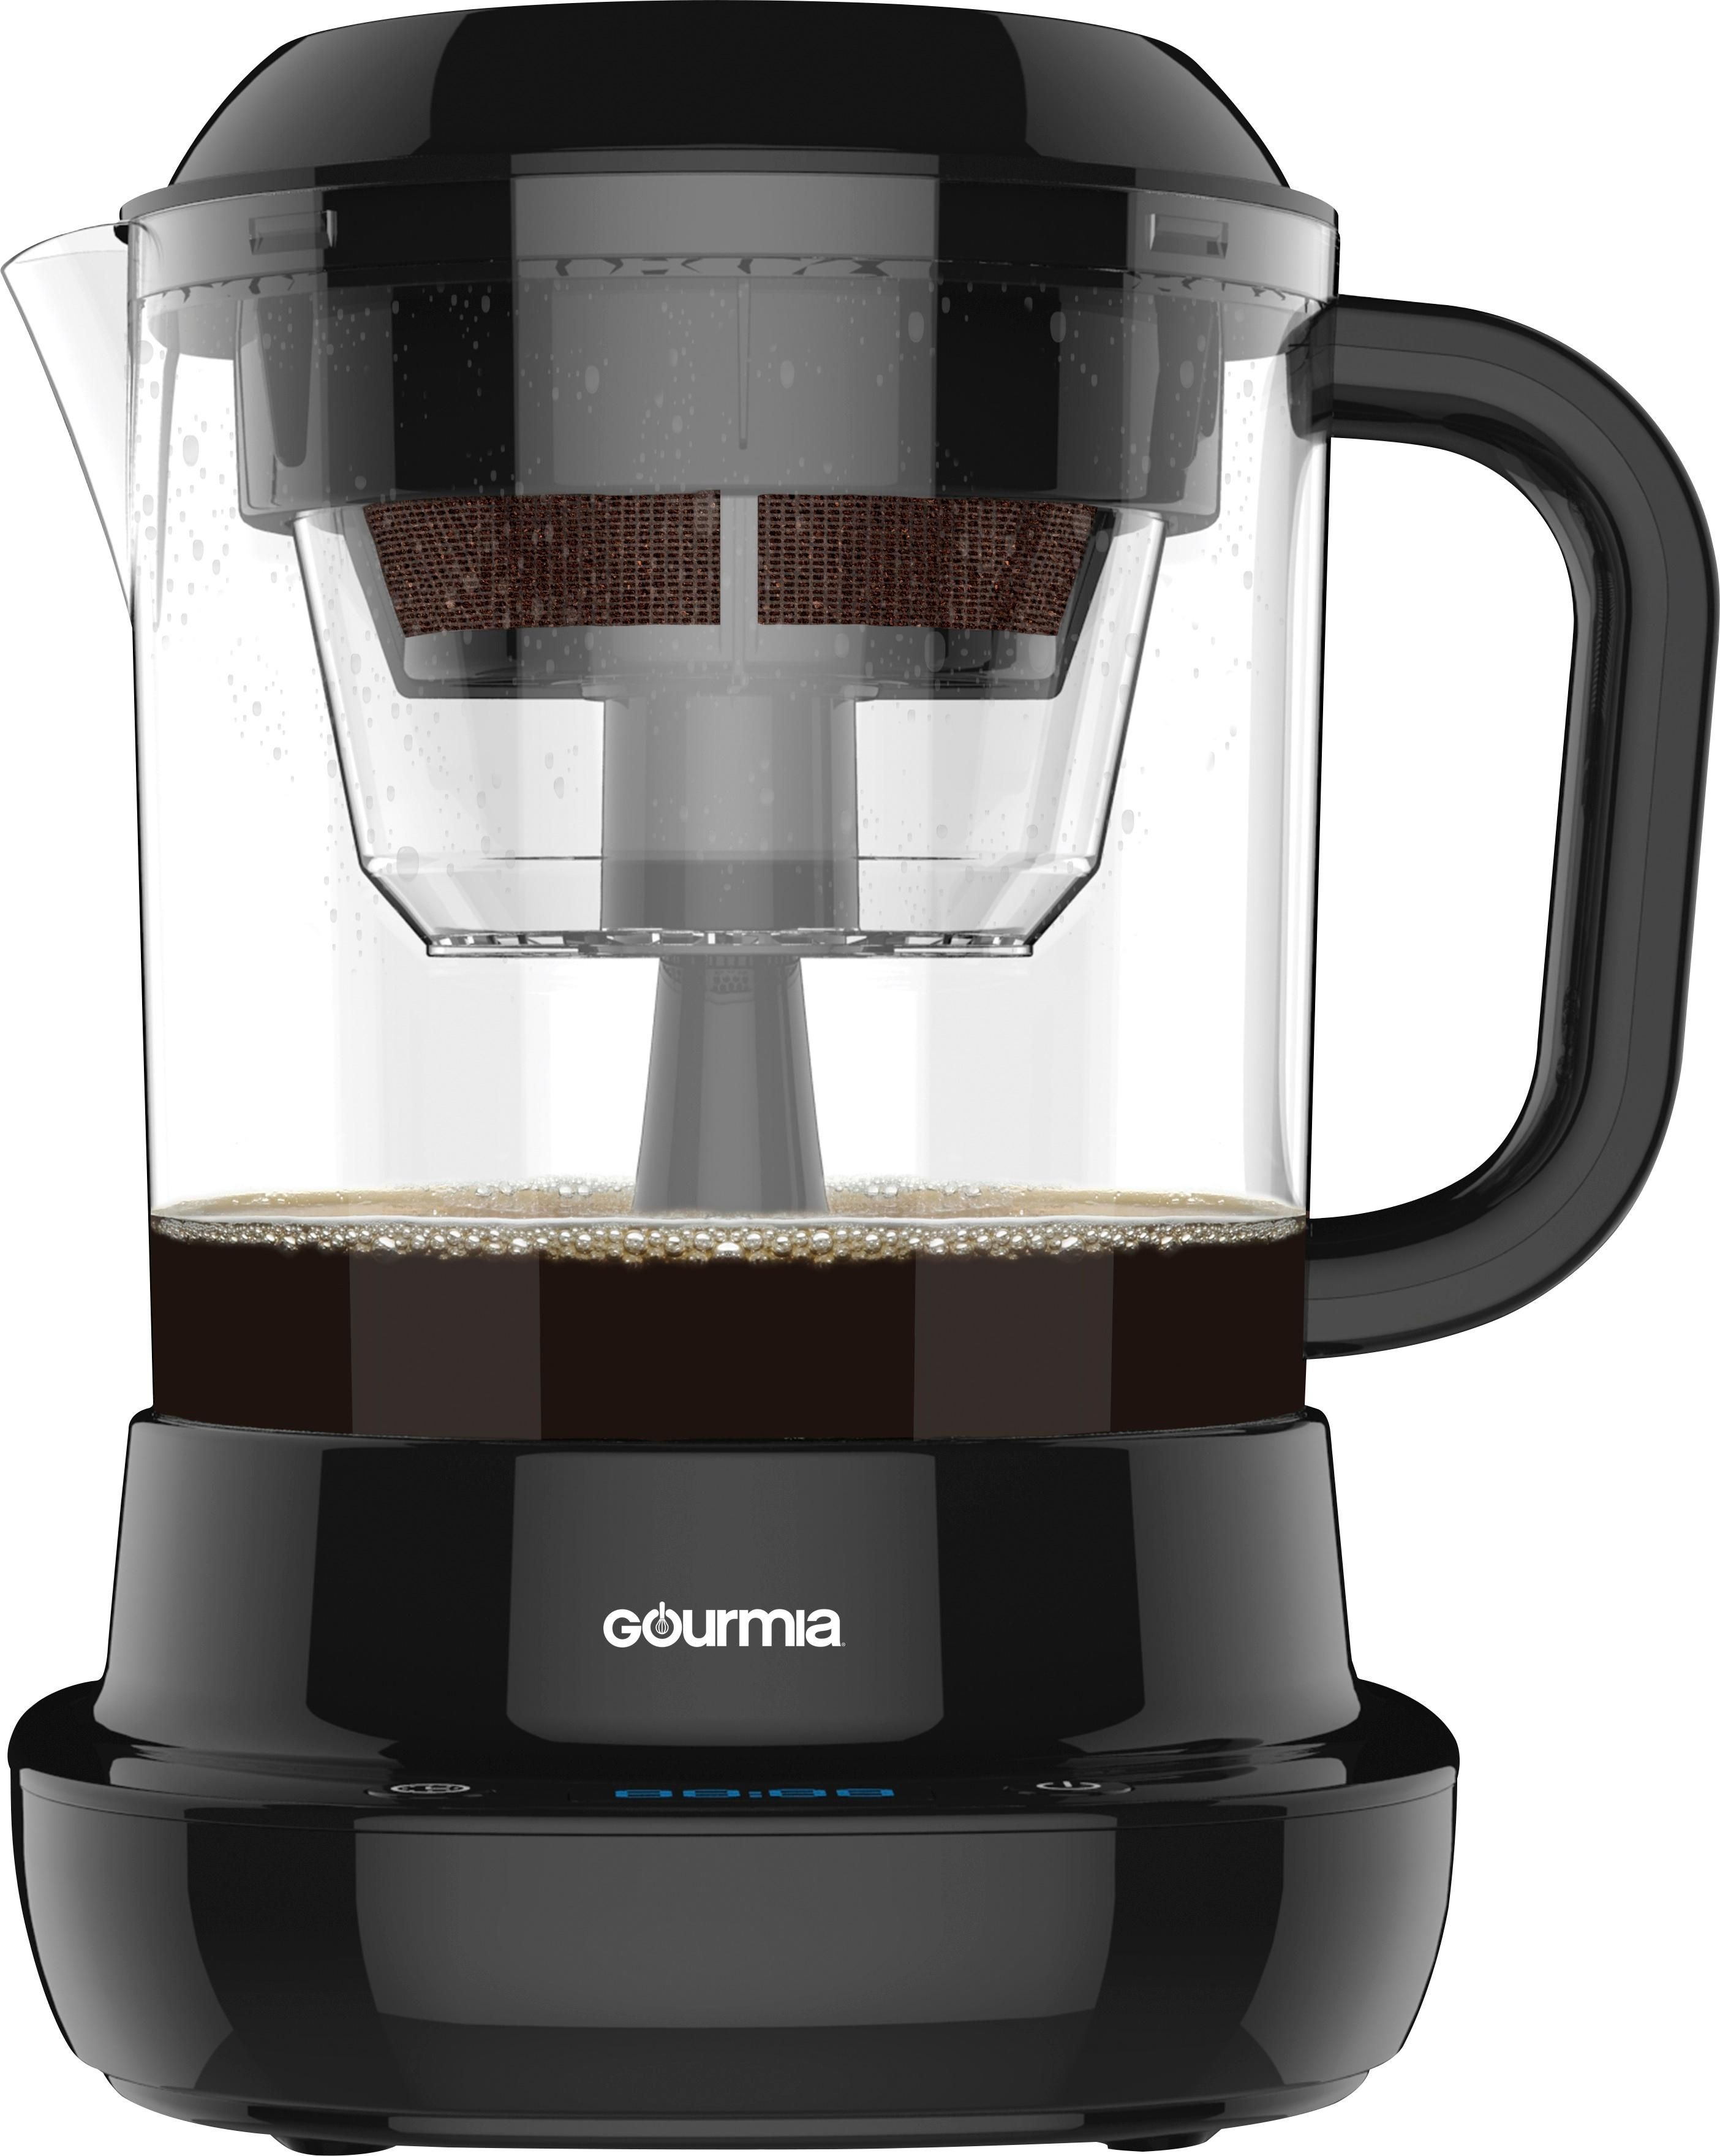 Shop Gourmia Cold Brew Coffee Maker Black at Best Buy